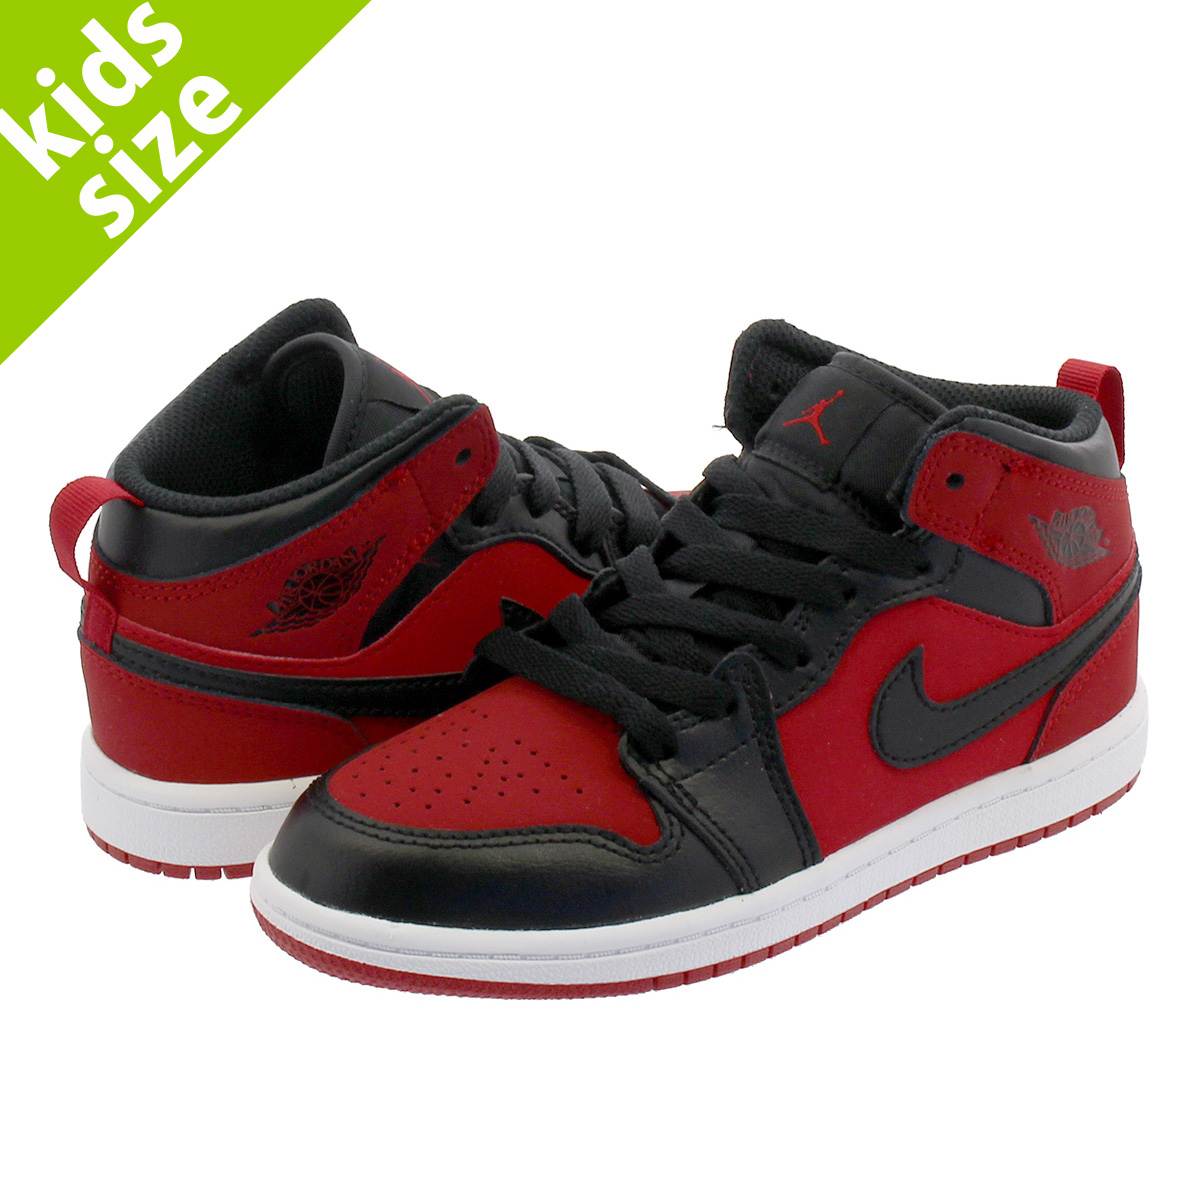 detailed look 2d259 b2065 NIKE AIR JORDAN 1 MID PS Nike Air Jordan 1 mid PS GYM RED BLACK ...